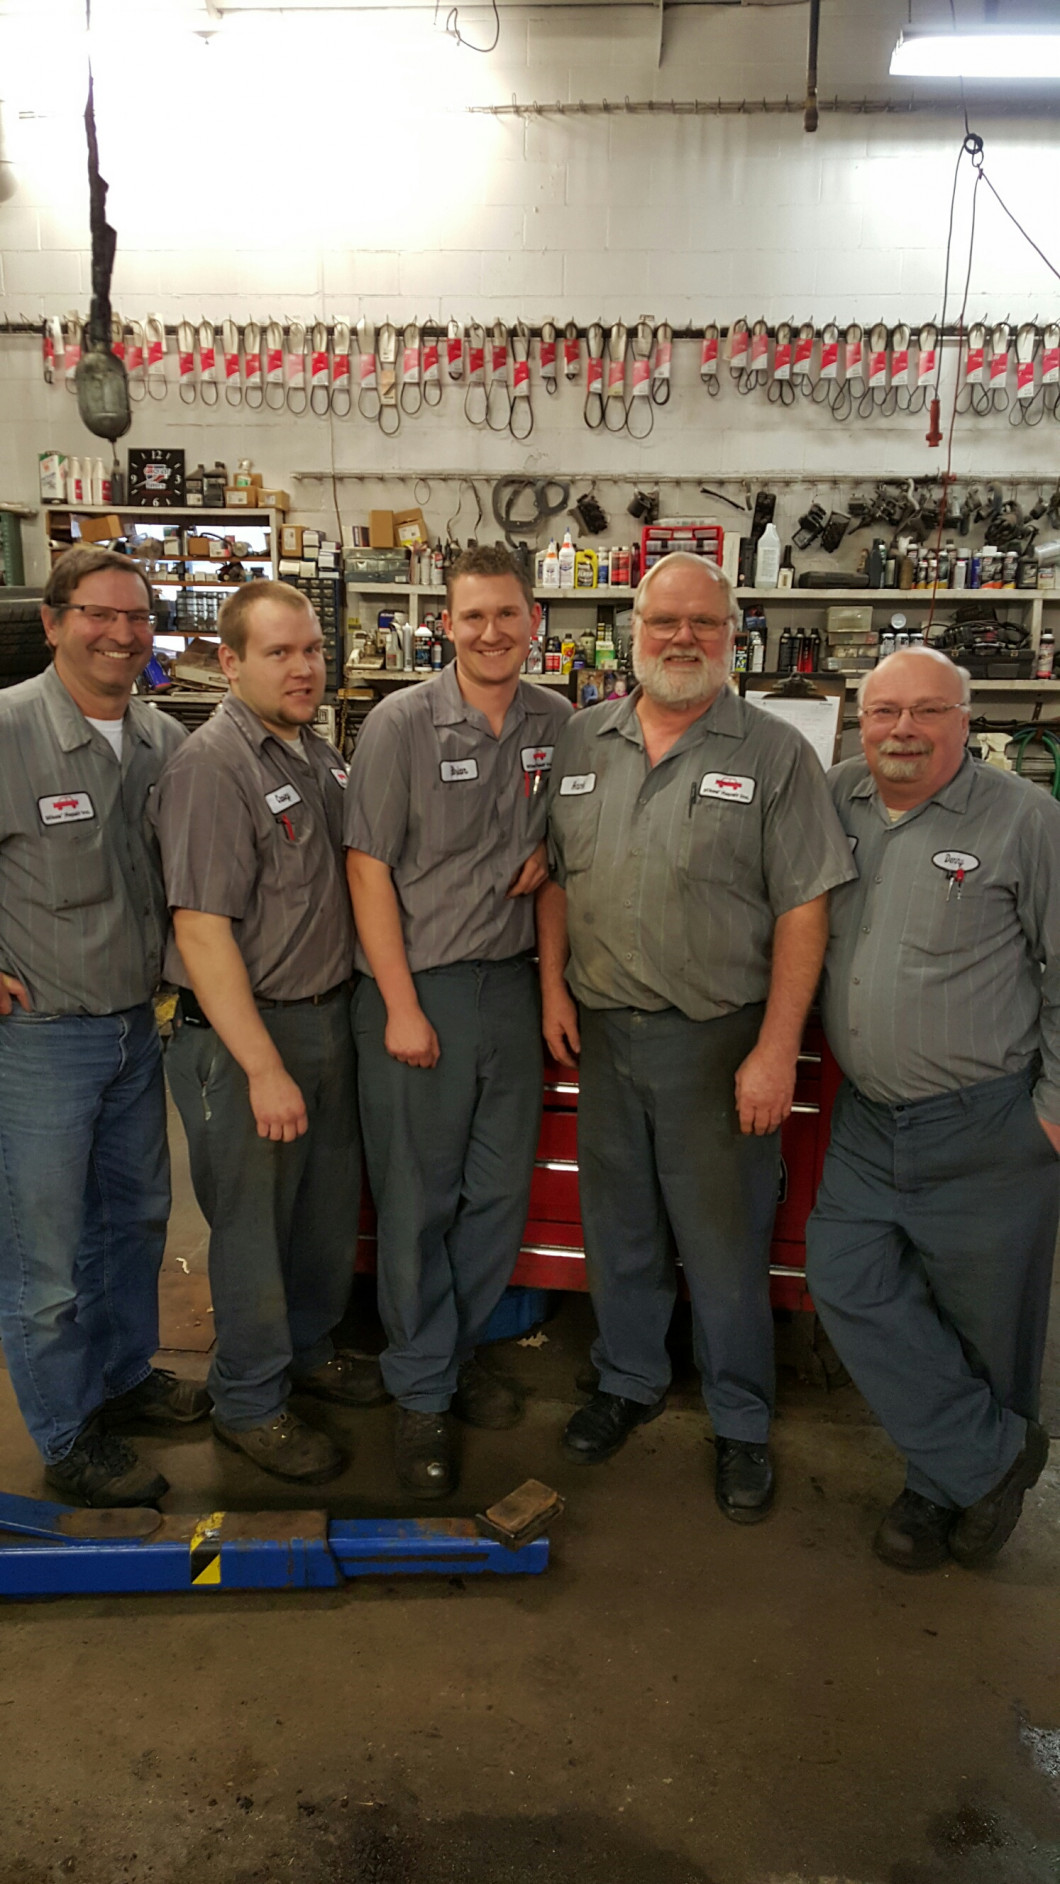 For over 30 years, Mike's Repair, Inc. has been serving St. Cloud, MN residents with top quality vehicle care.